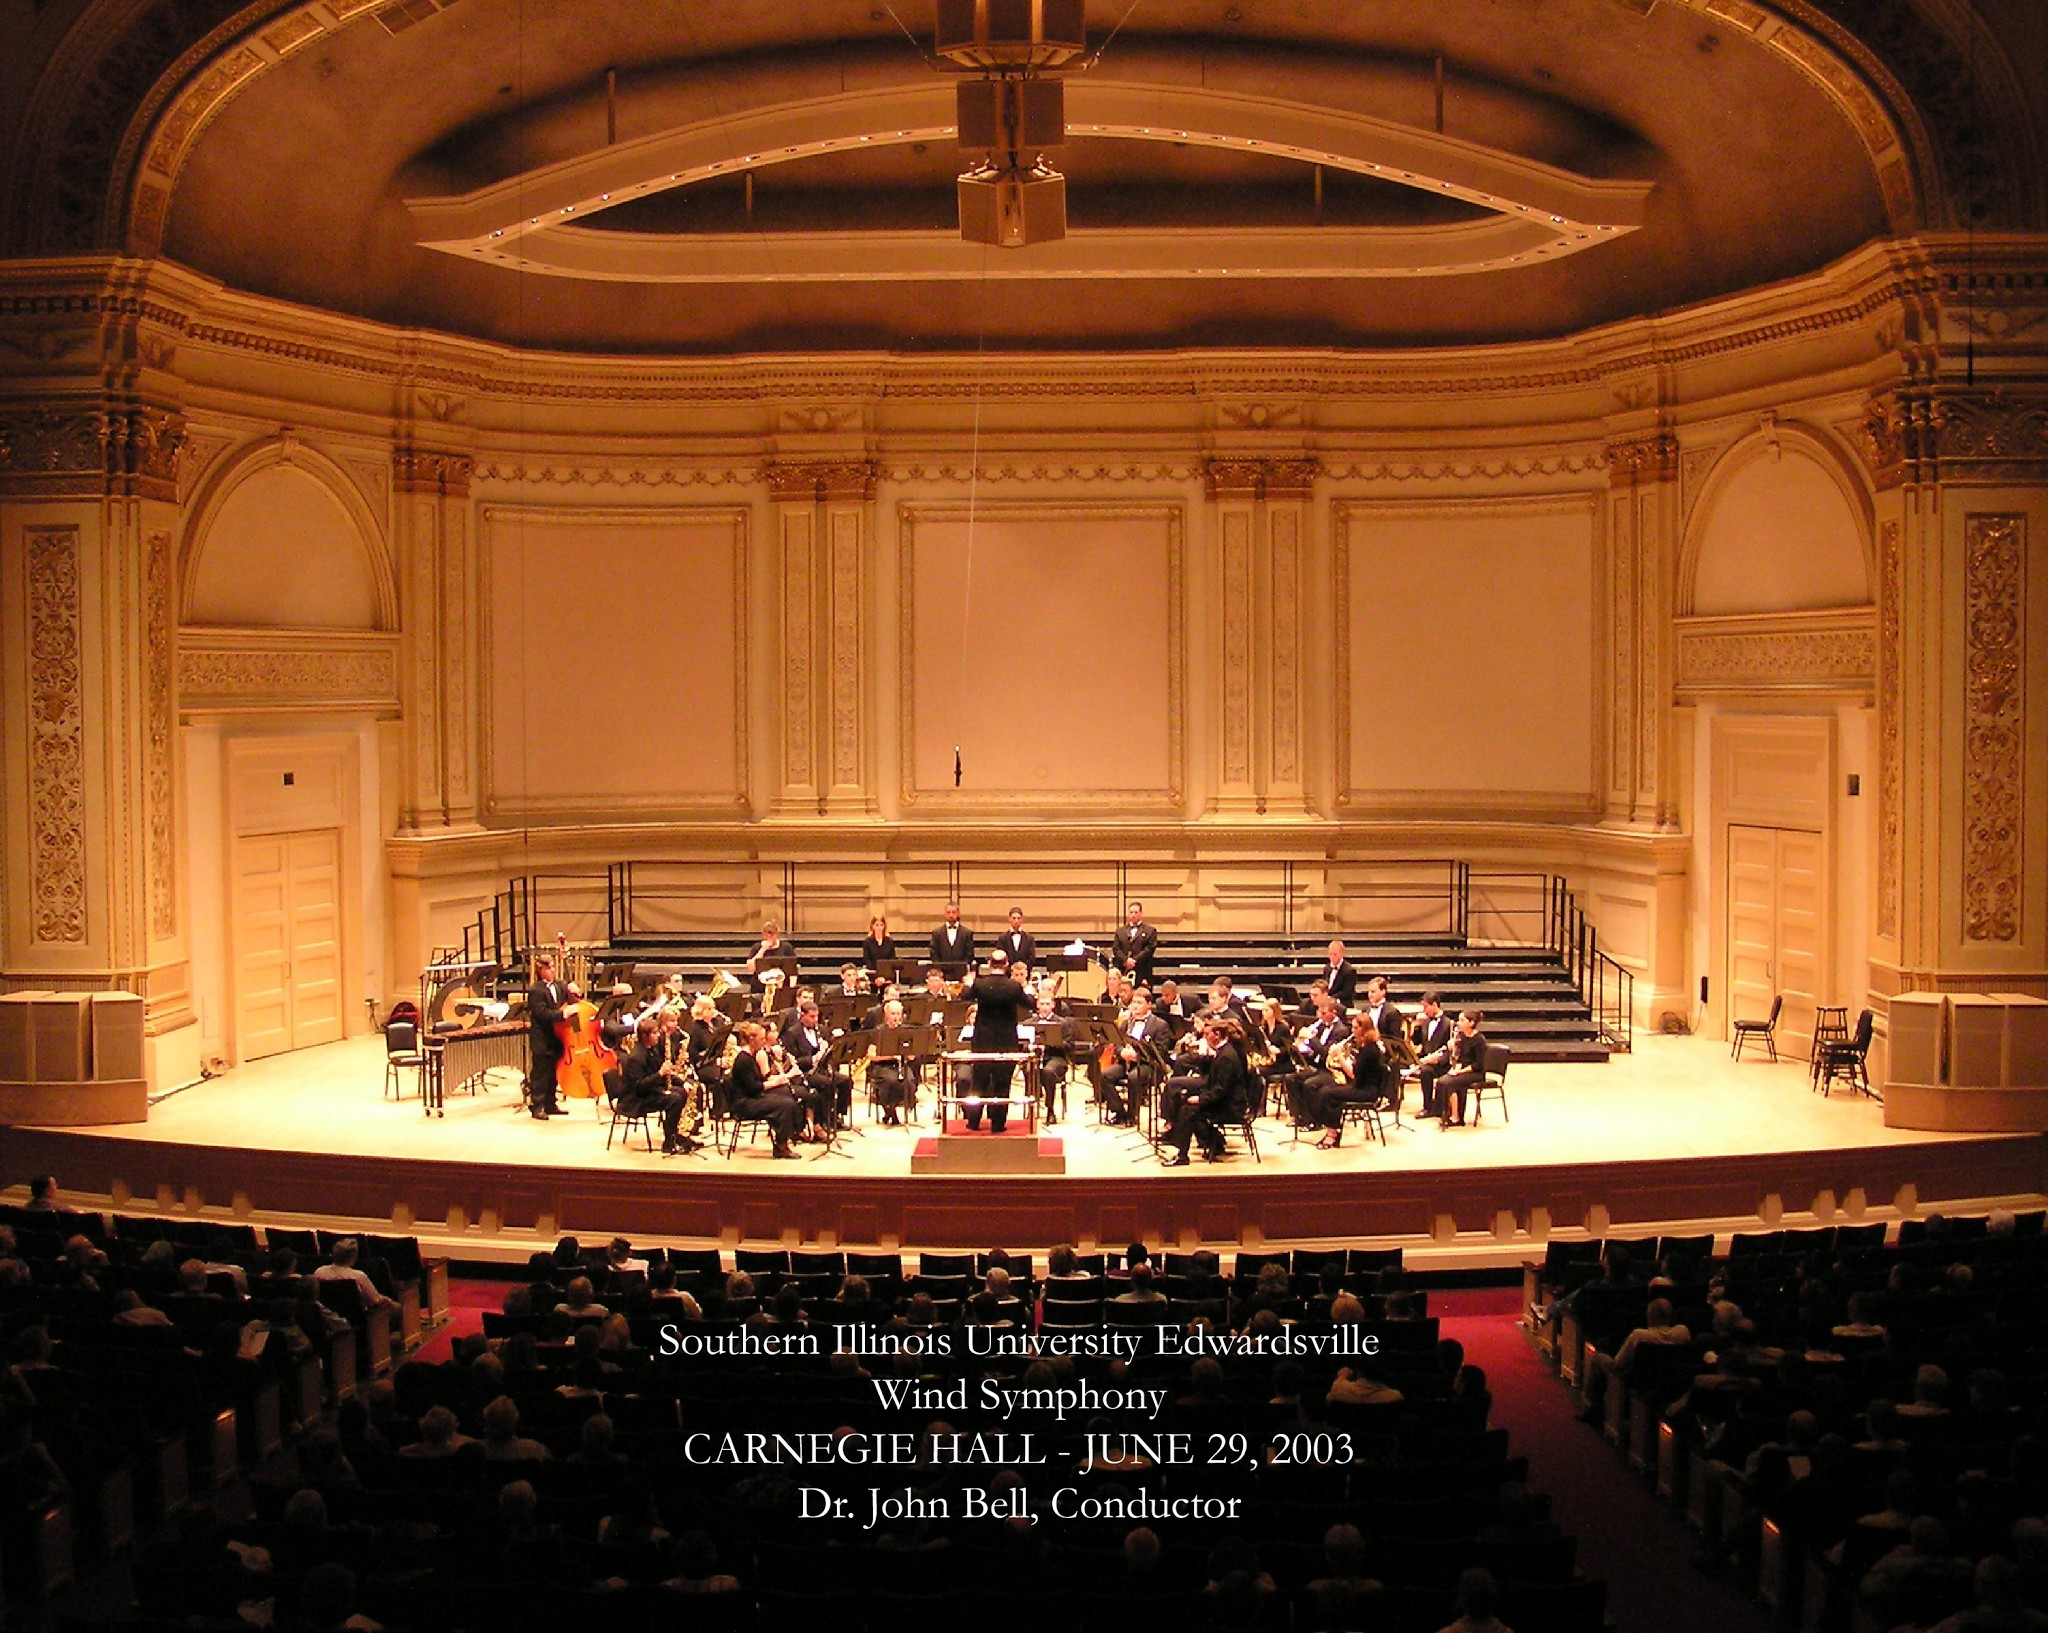 Carnegie Hall 8x10 with text